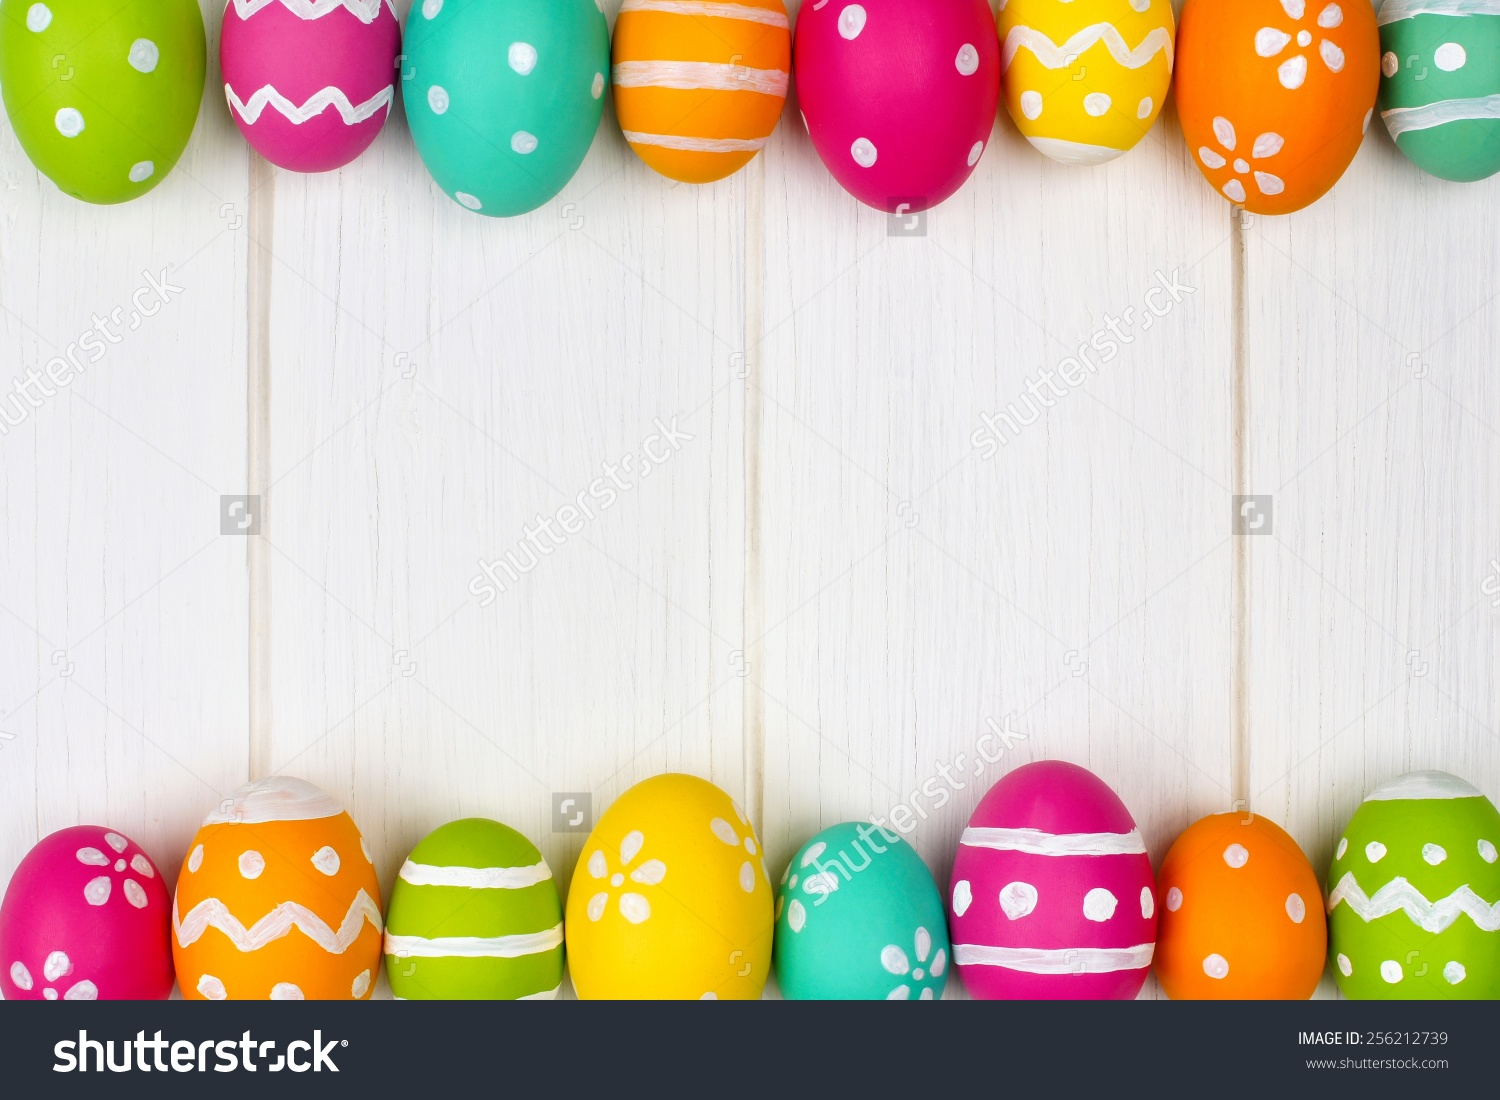 Easter egg clipart border graphic freeuse download Collection Easter Egg Border Pictures - Reikian graphic freeuse download